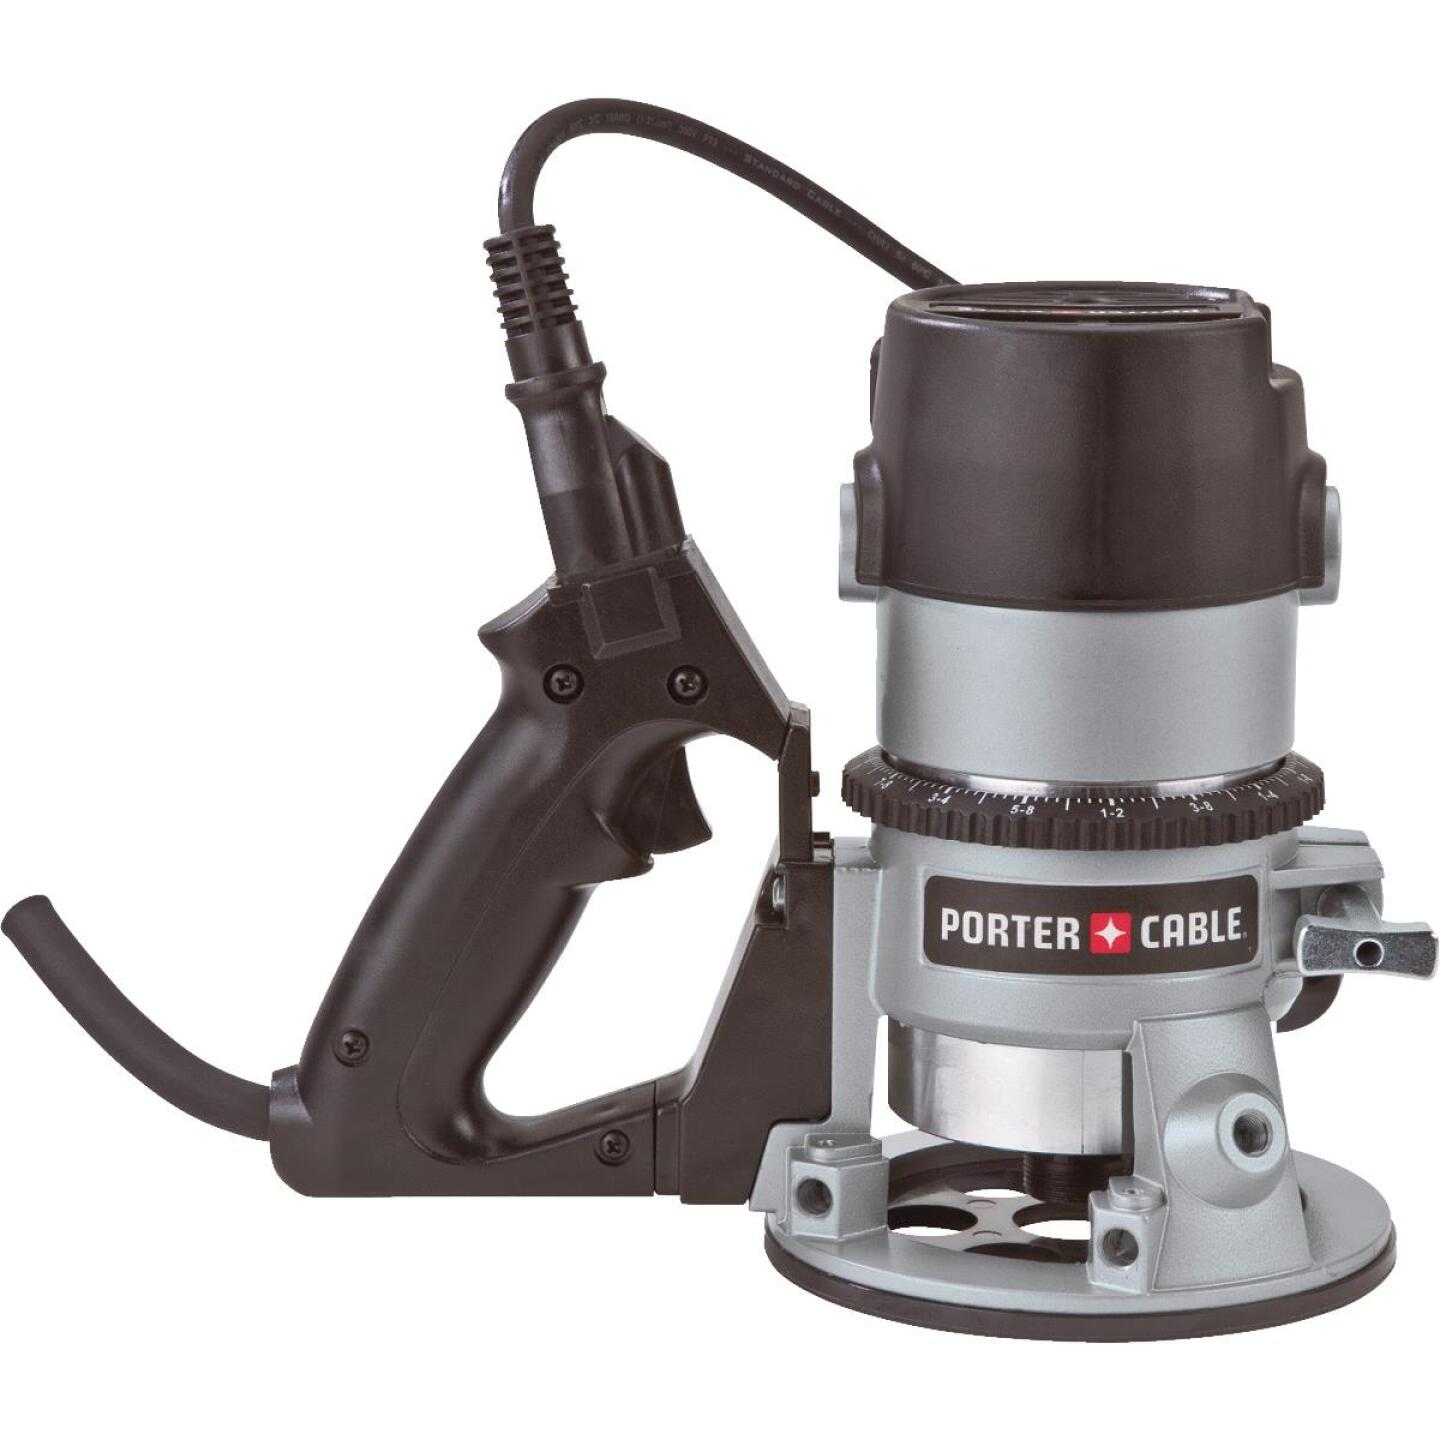 Porter Cable 1-3/4 HP/11.0A 27,500 rpm Router Image 1